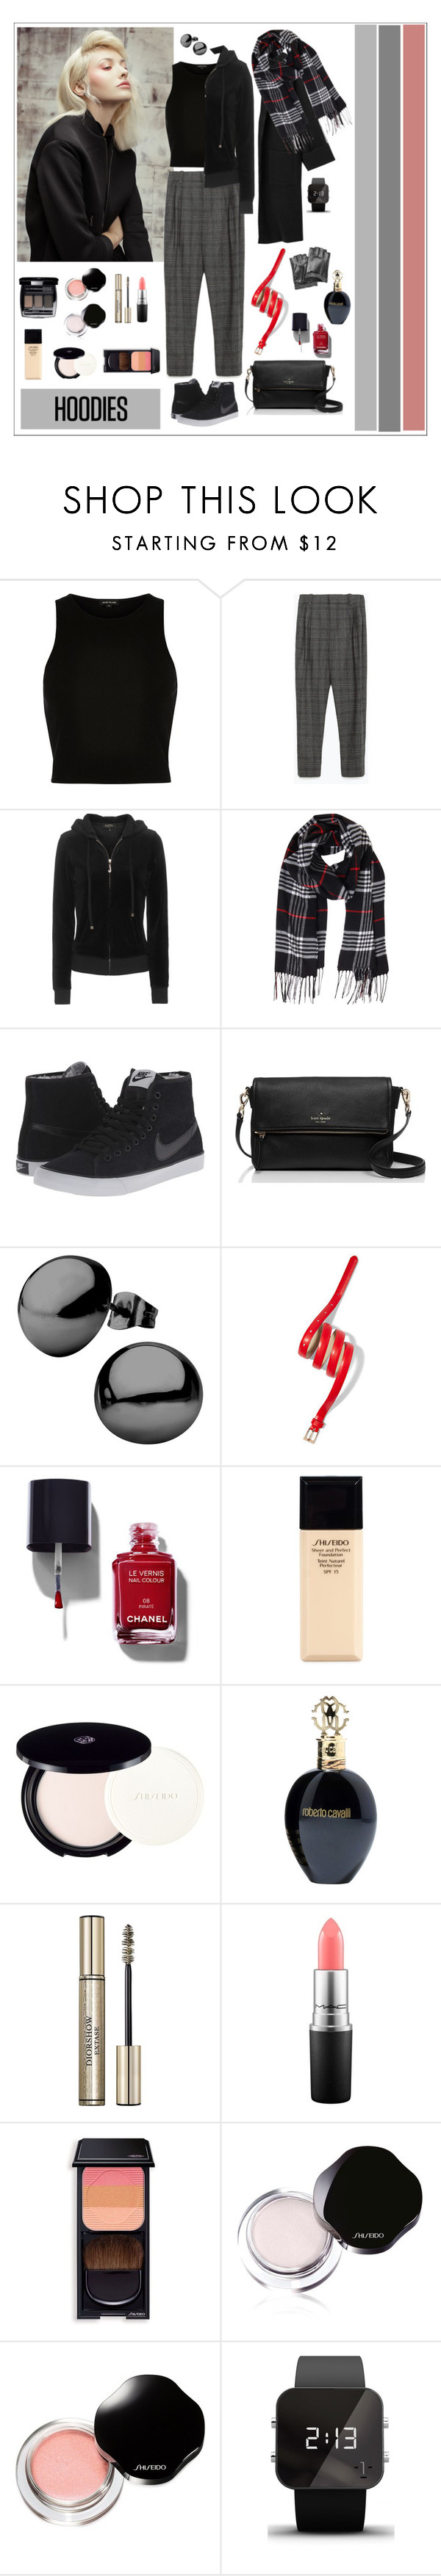 """""""No for hoodies, yes for layers"""" by rara-nataliya ❤ liked on Polyvore featuring River Island, Zara, Juicy Couture, Humble Chic, NIKE, Kate Spade, New York & Company, Chanel, Shiseido and Roberto Cavalli"""